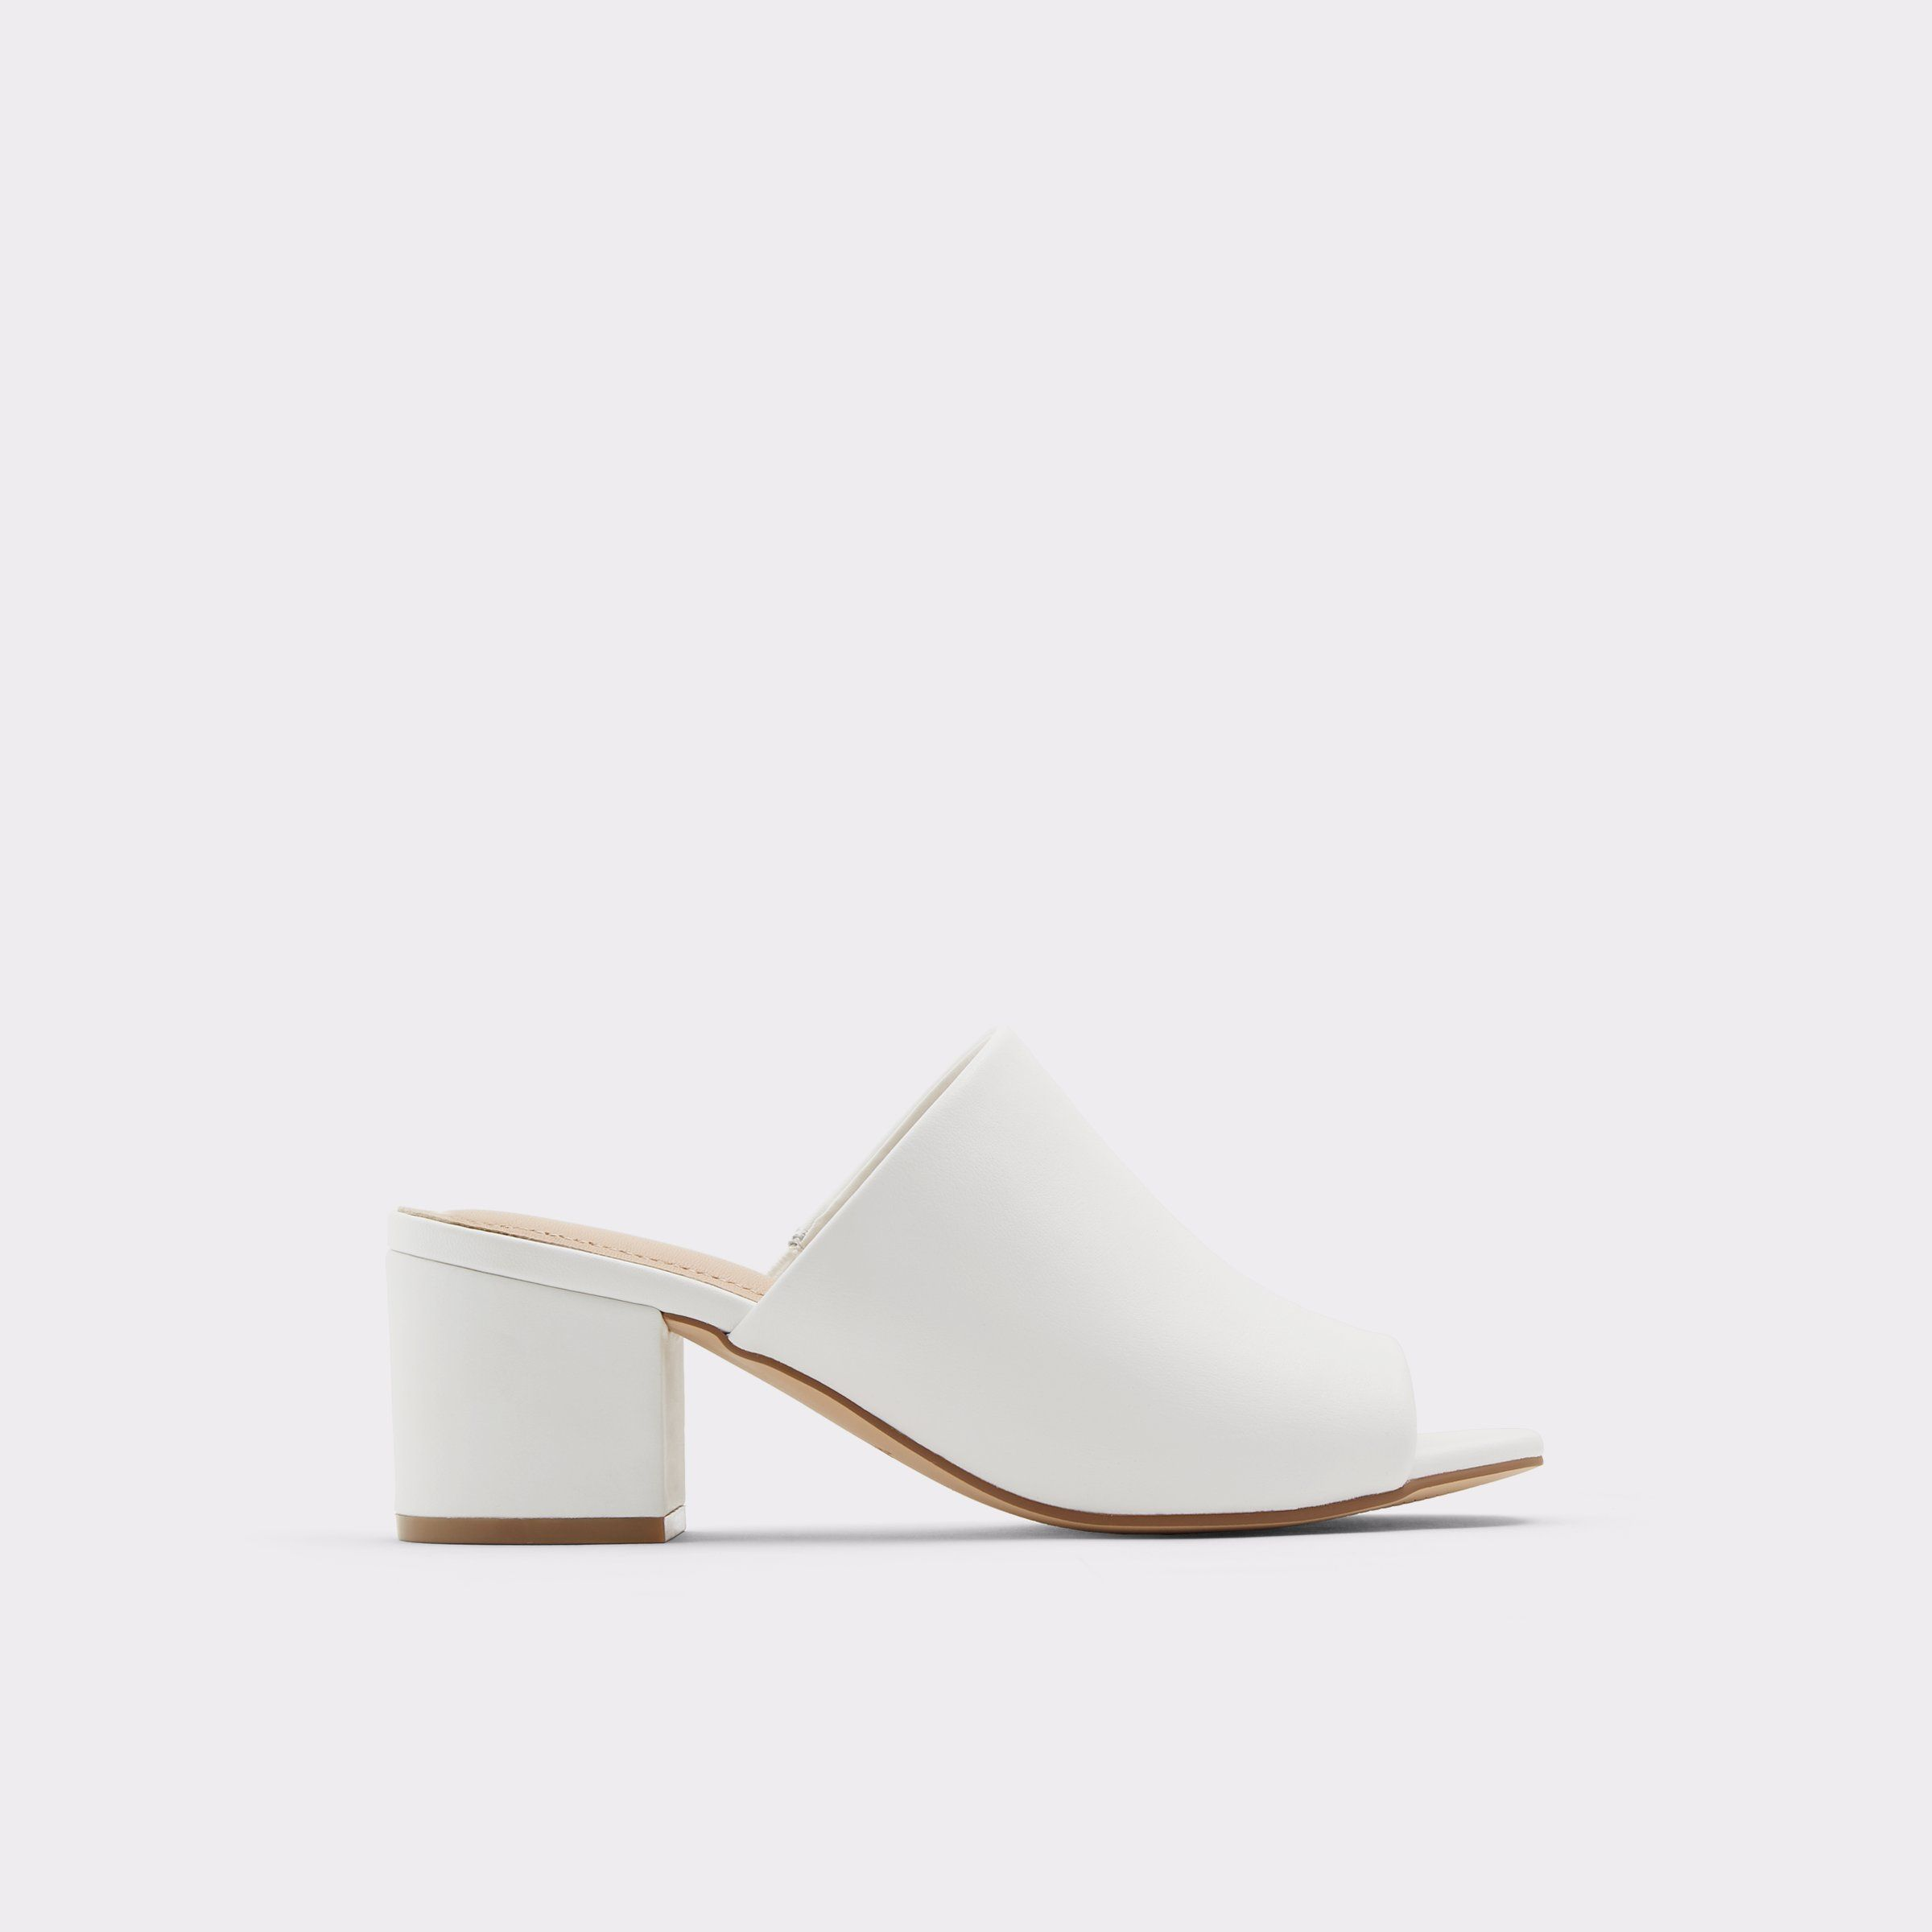 Alaska White Women S Sandals Aldo Us White Womens Sandals Heels Staple Shoes